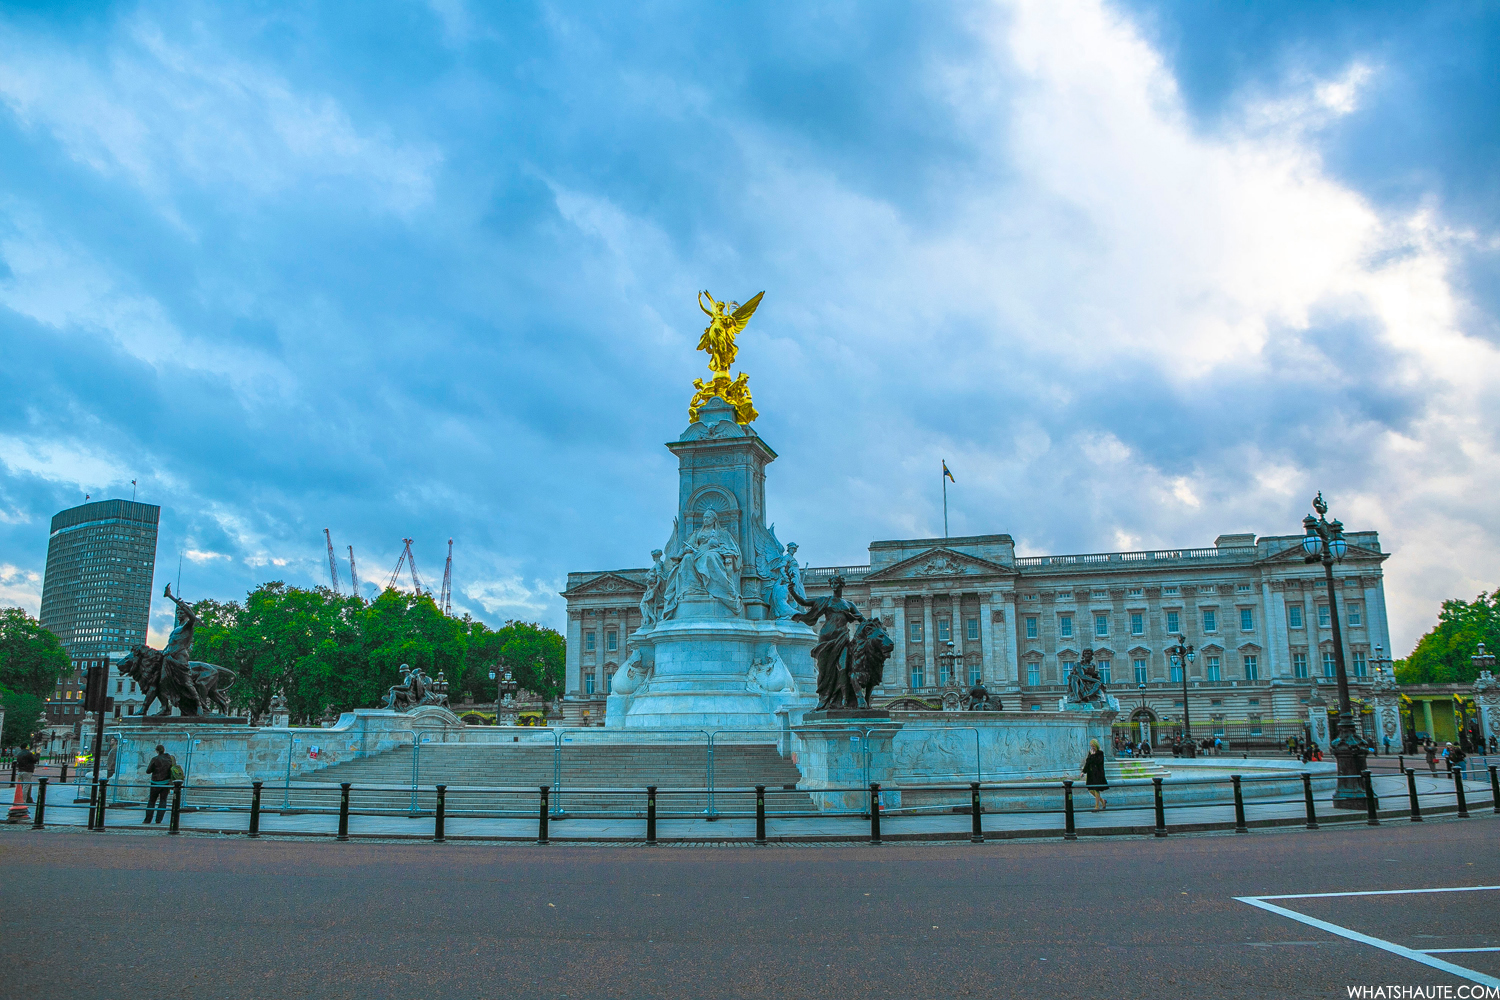 Buckingham Palace - London, England, What's Haute in the World